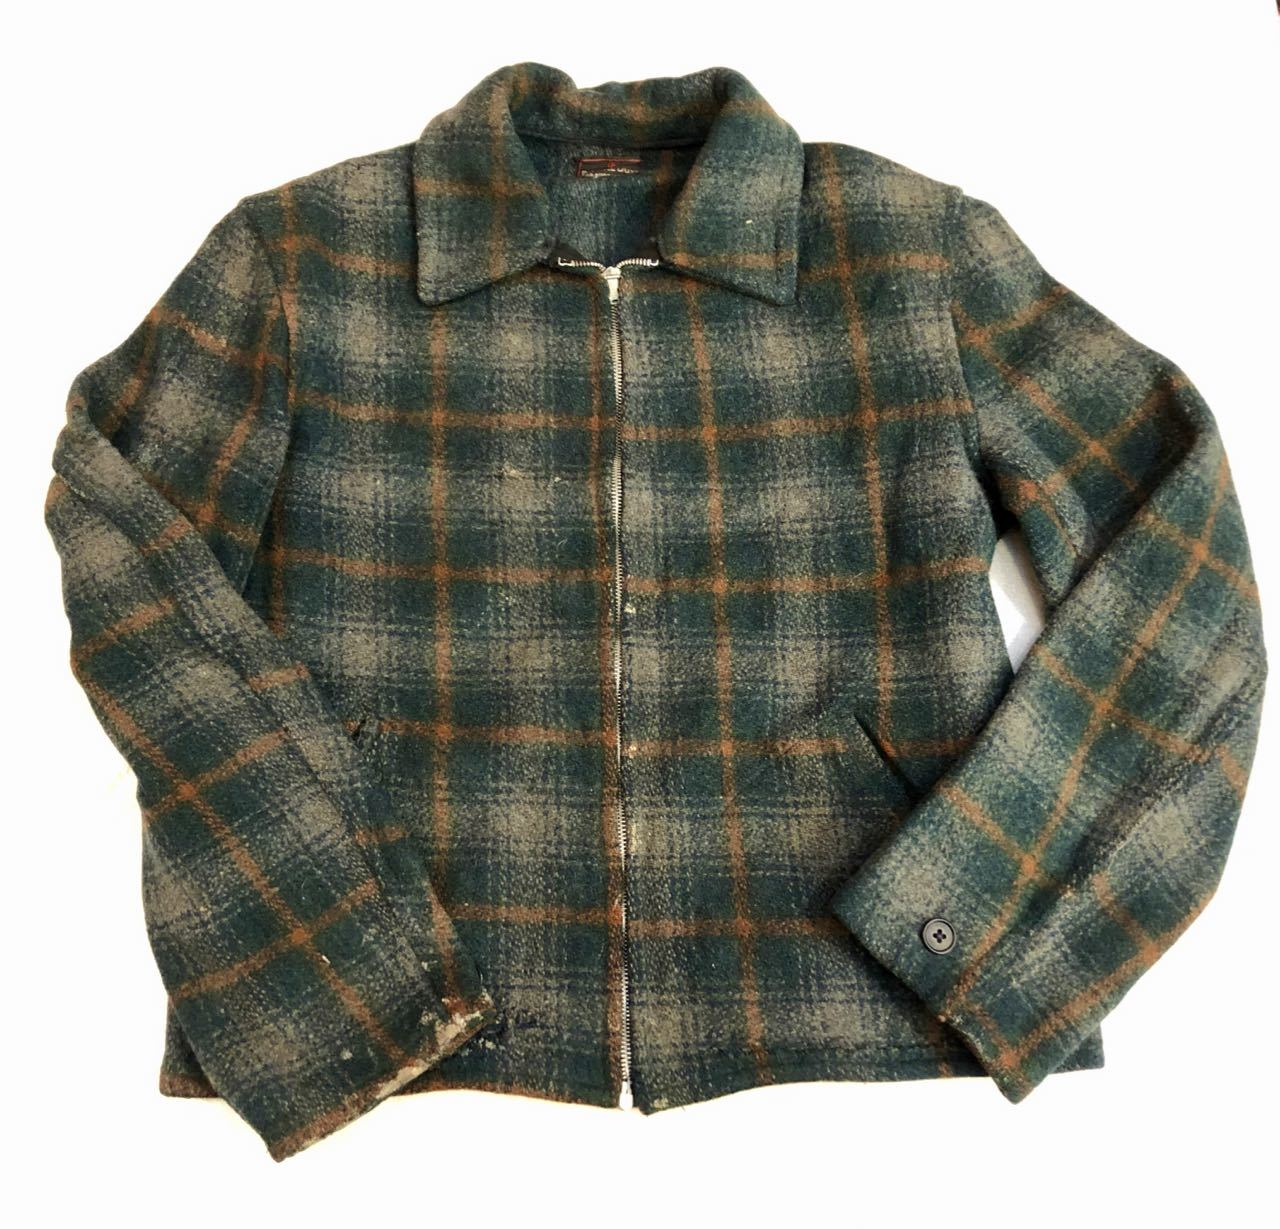 1月2日(木)新春初売り商品! 40s Double Duty wool onbre Jacket!! CROWN ZIPPER!_c0144020_13280827.jpg